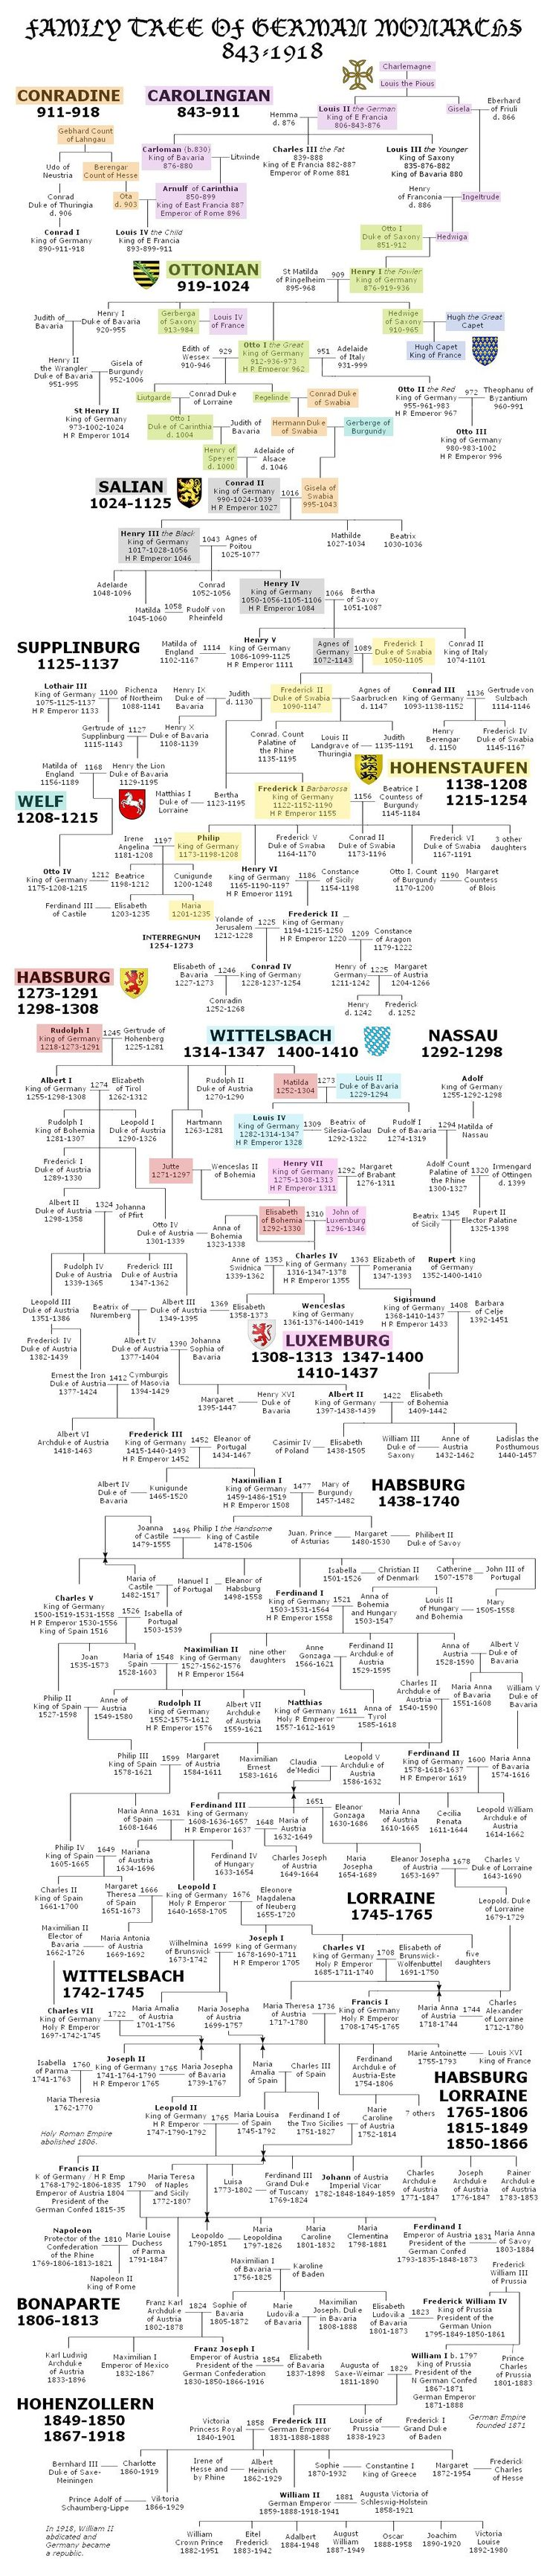 best images about all things royal family tree of german monarchs 843 the current queen is also of german descent but her family changed their last to the very english sounding